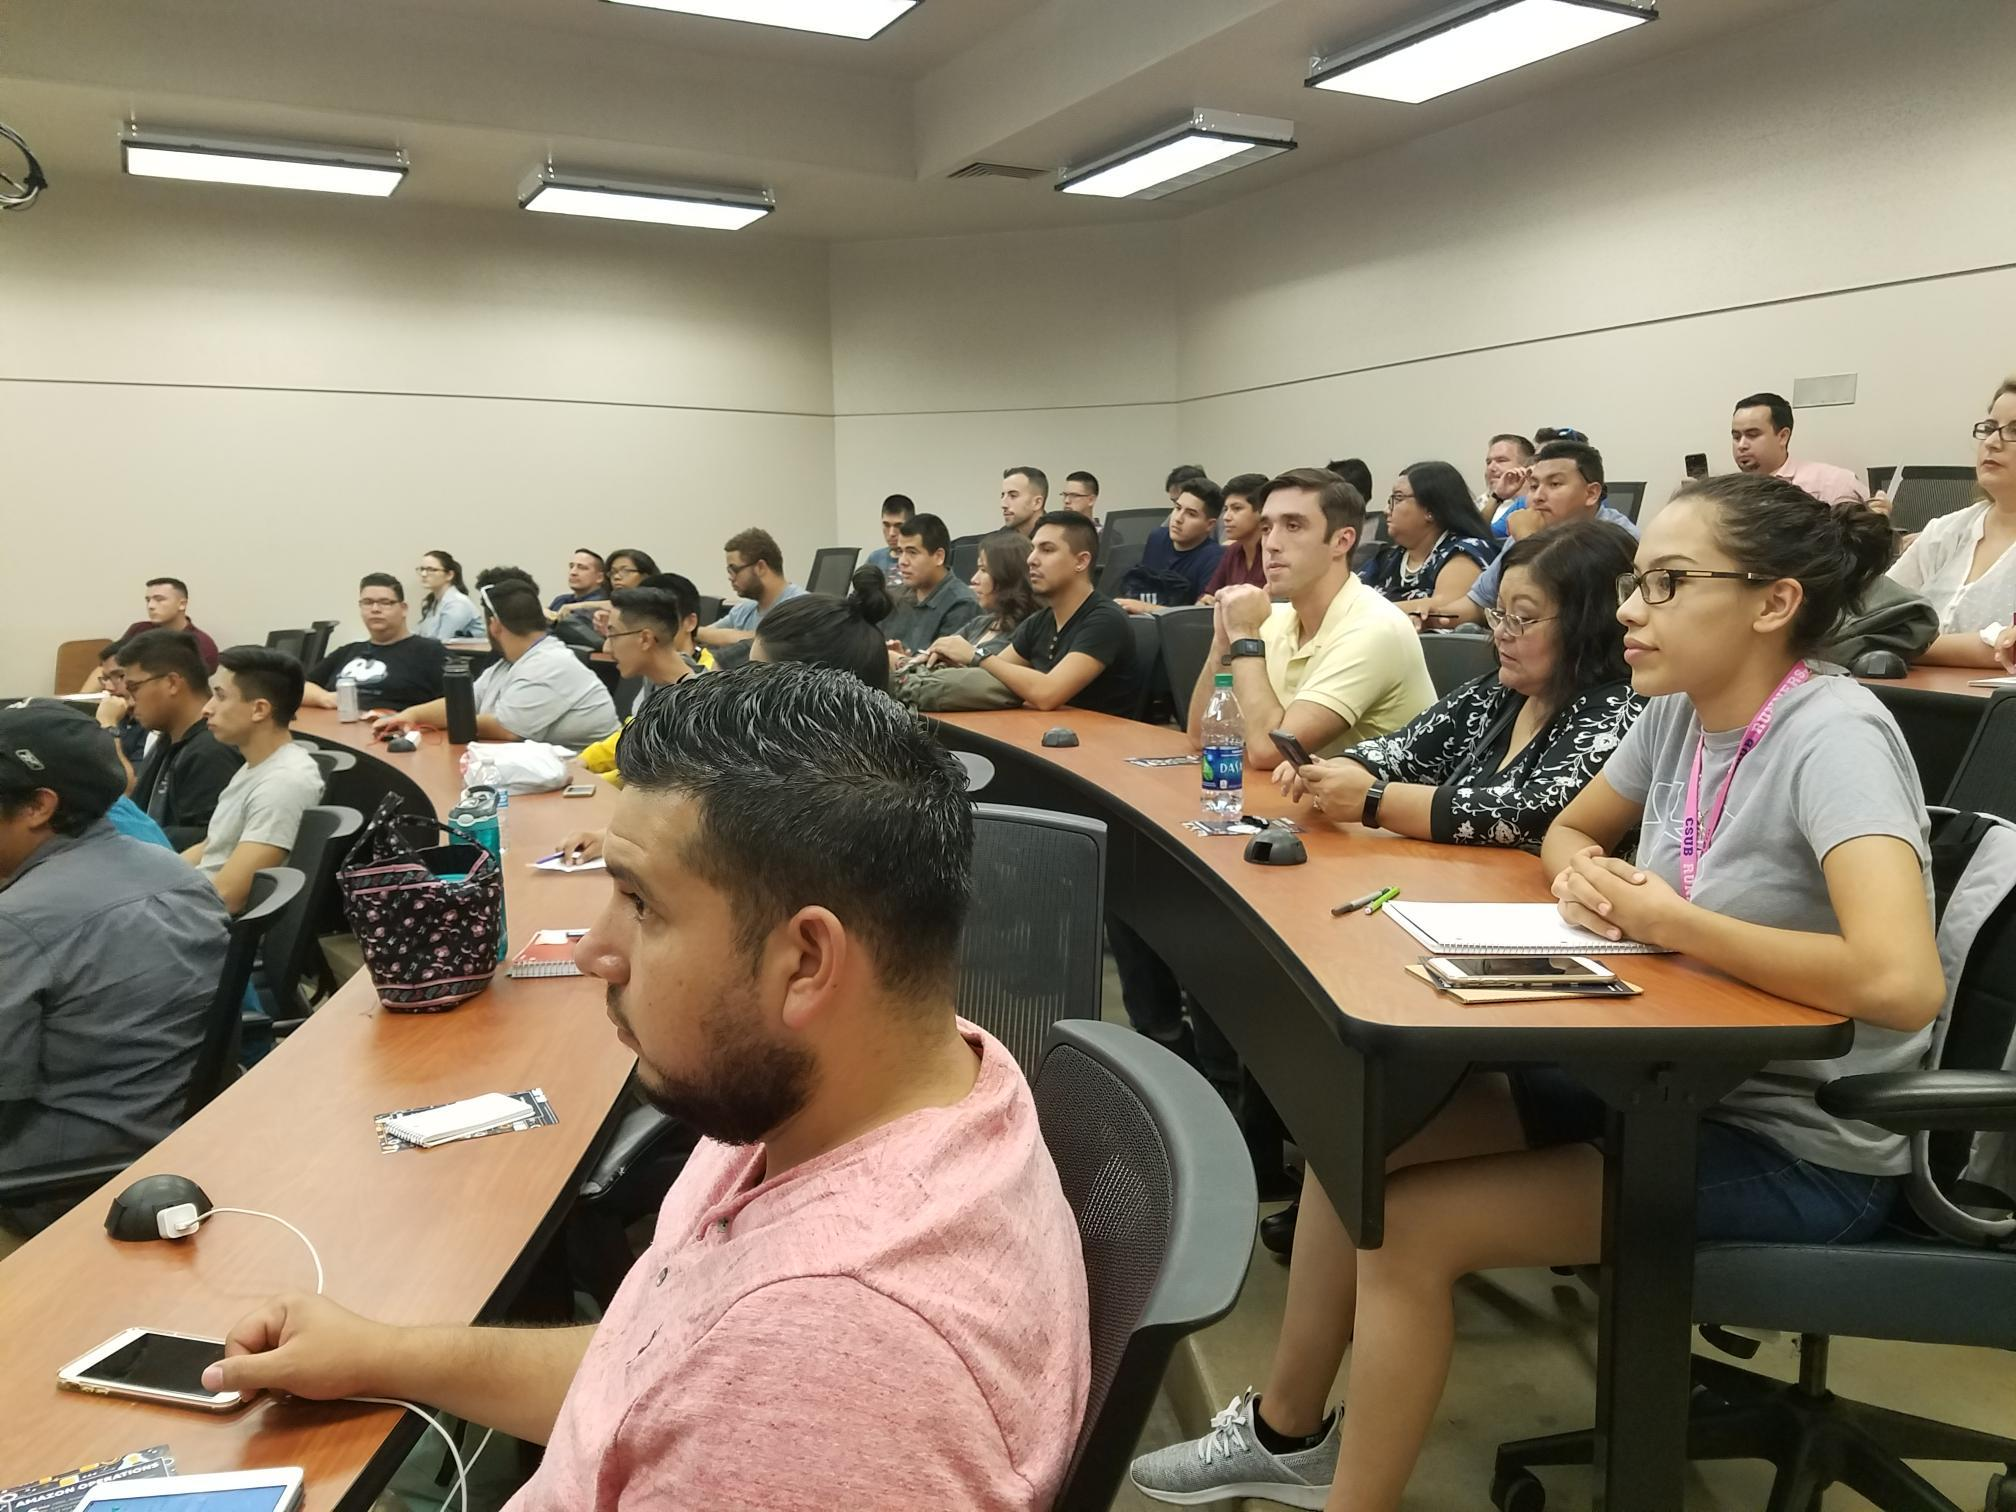 Amazon delivers job and internship information to a packed lecture hall